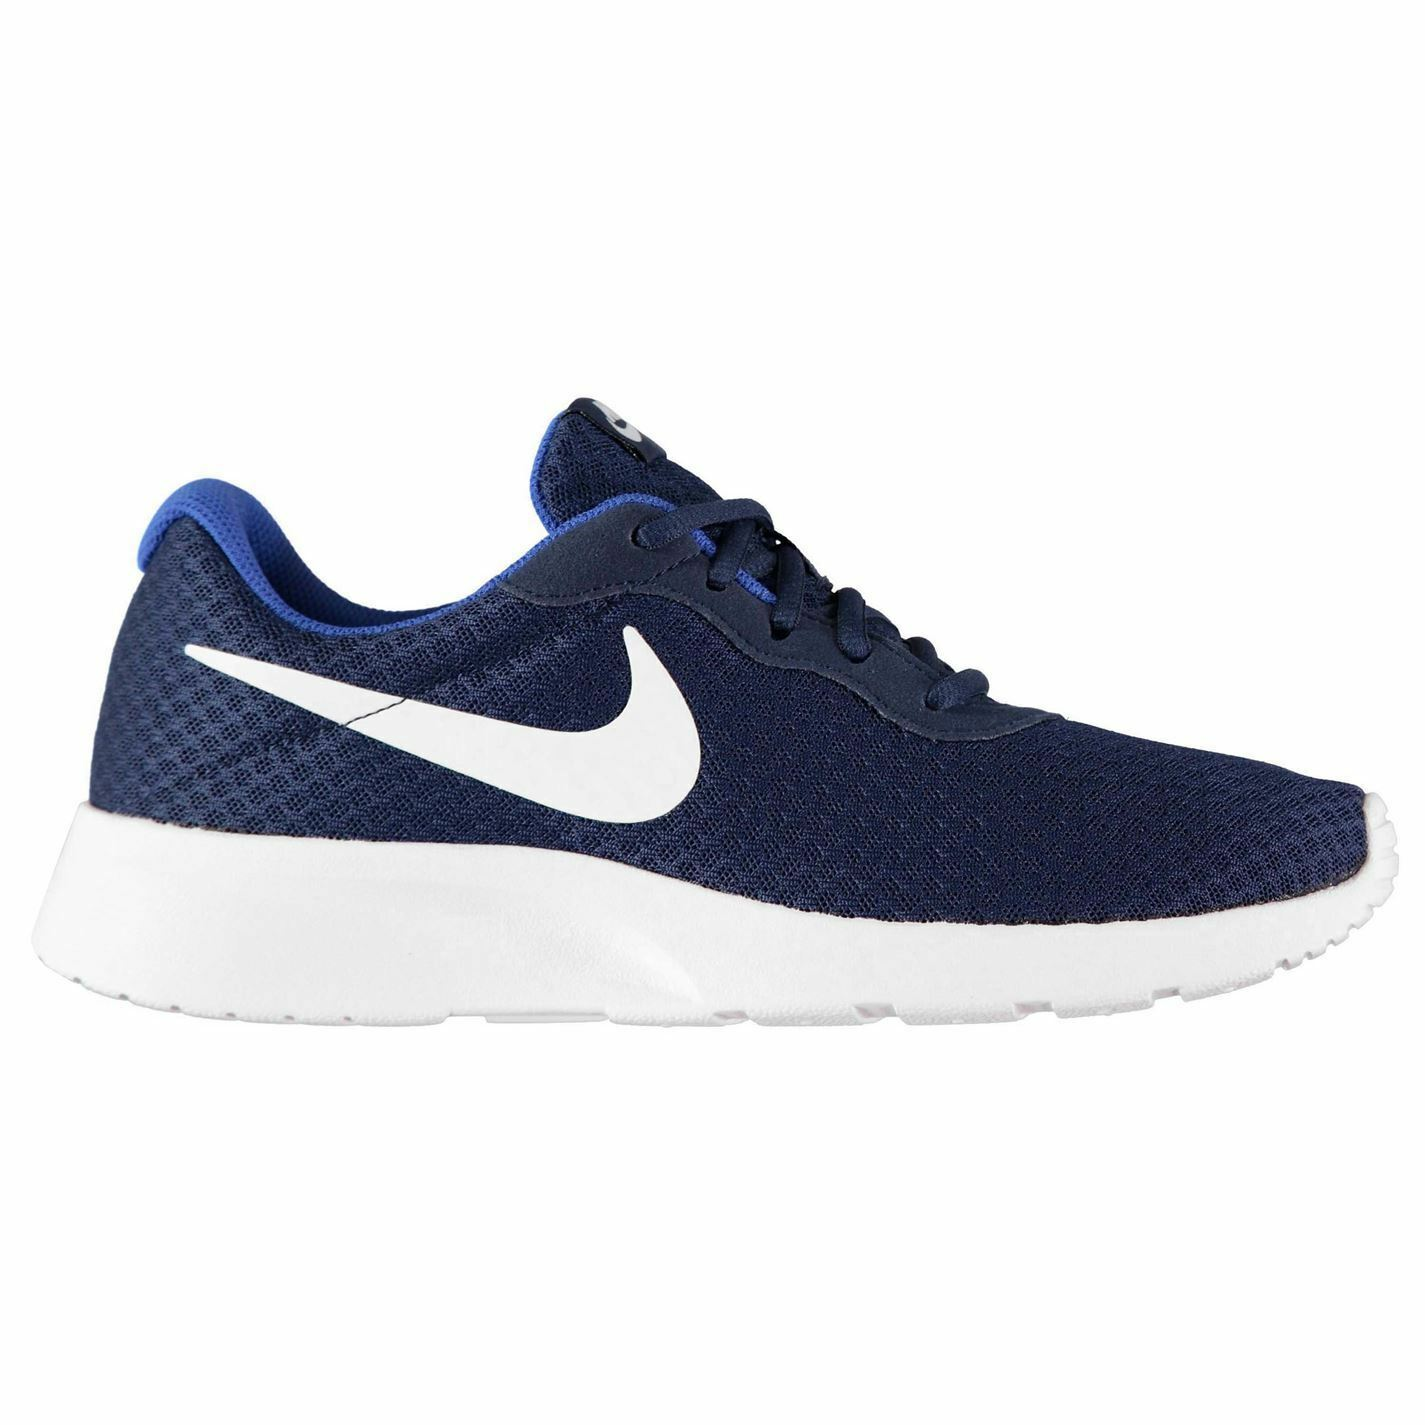 Nike Tanjun Trainers Mens Navy White Athletic Sneakers shoes